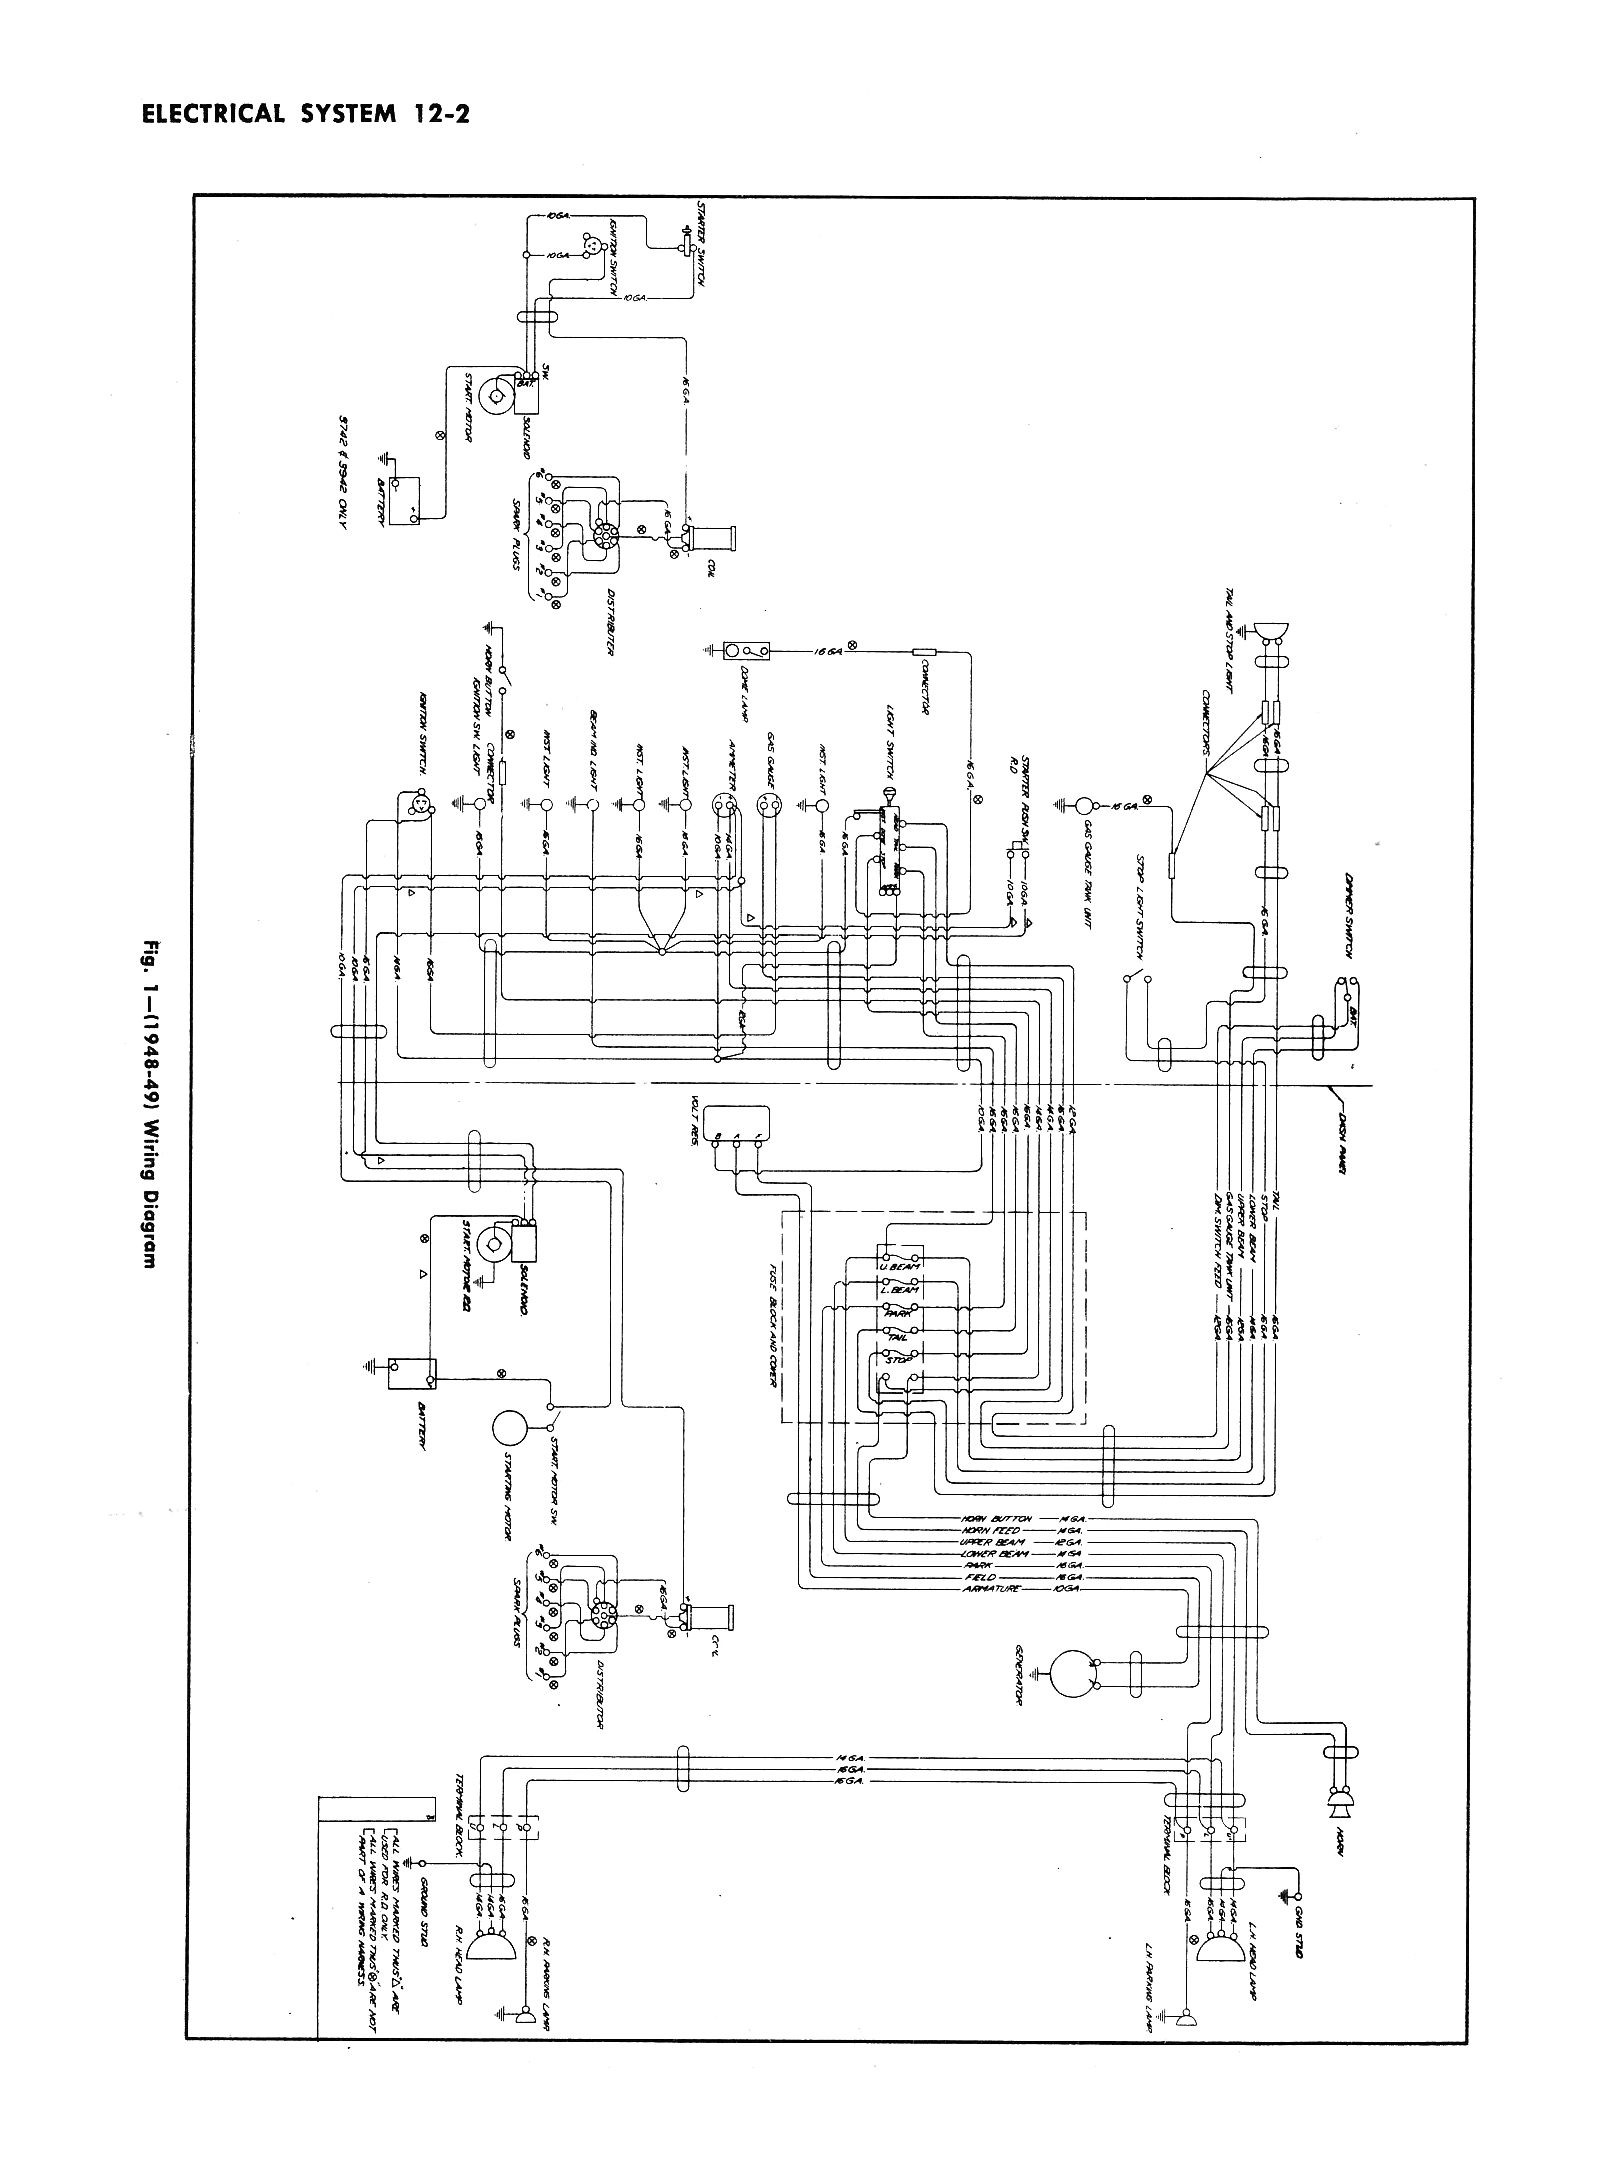 1950 Ford Dash Wiring Diagram. Ford. Wiring Diagrams Instructions  Chevy Truck Instrument Cluster Wiring Diagram on ford instrument cluster wiring diagram, chevy truck instrument cluster assembly, 2003 chevy silverado instrument cluster wiring diagram, 2004 chevy silverado instrument cluster wiring diagram, chevy truck body diagram, audi instrument cluster wiring diagram,